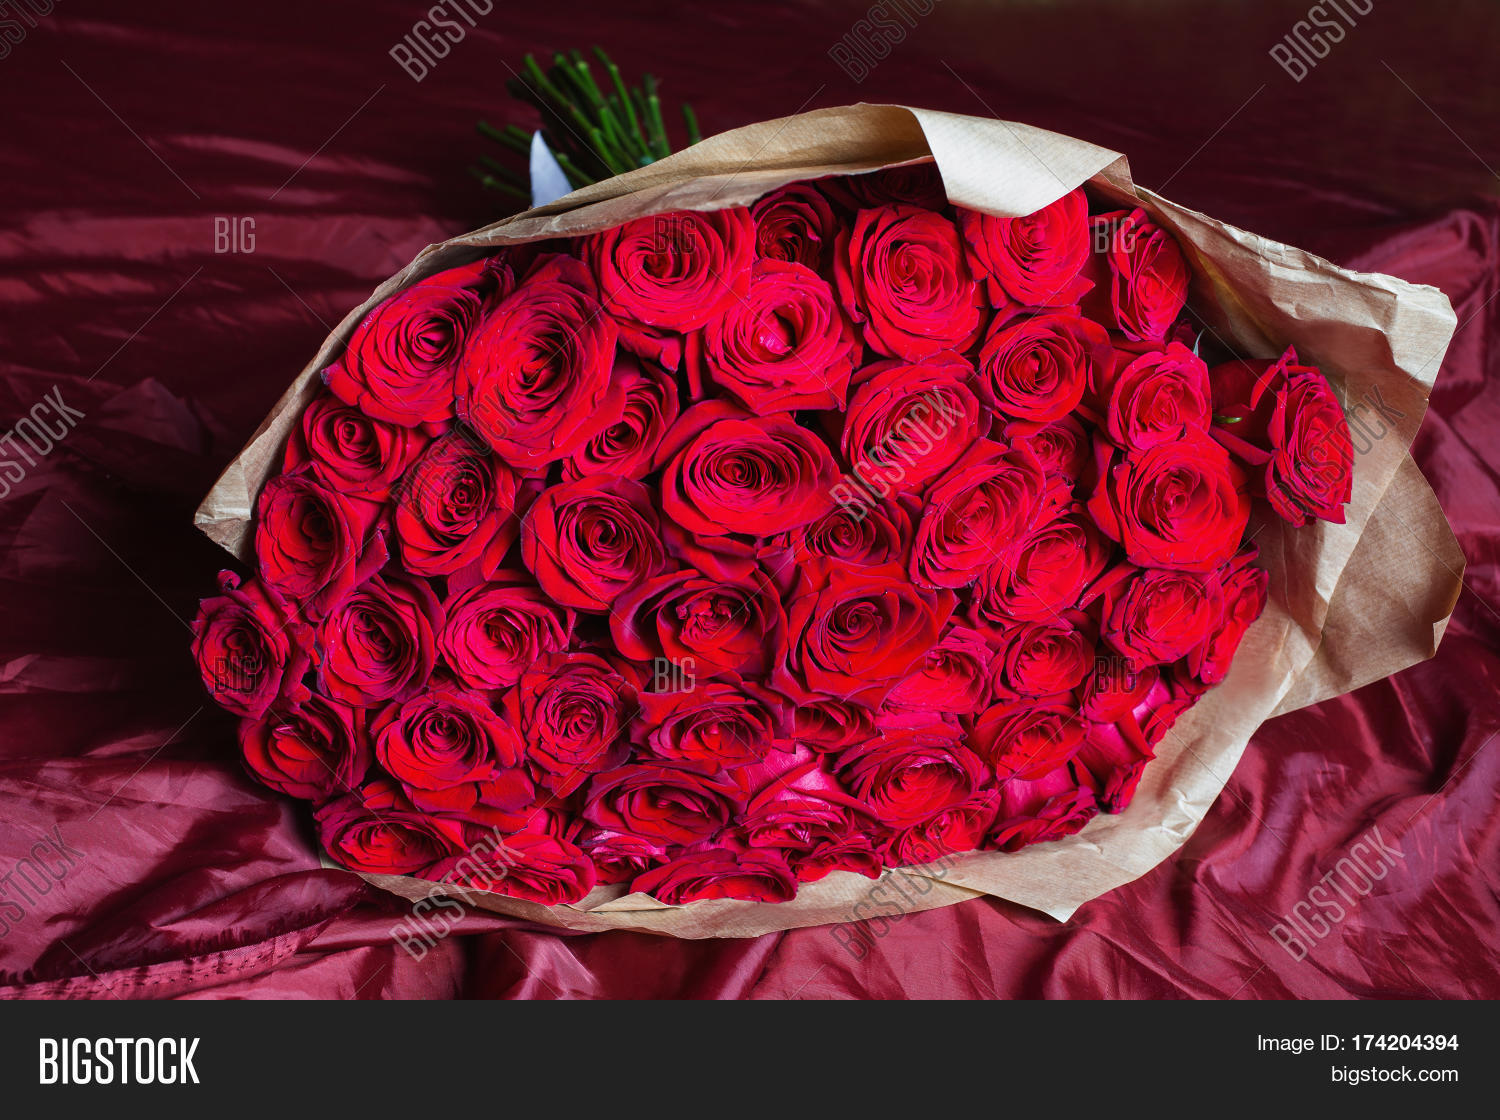 Big bouquet of red roses texture colors a bouquet gift for a big bouquet of red roses texture colors a bouquet gift for a wedding birthday dhlflorist Gallery